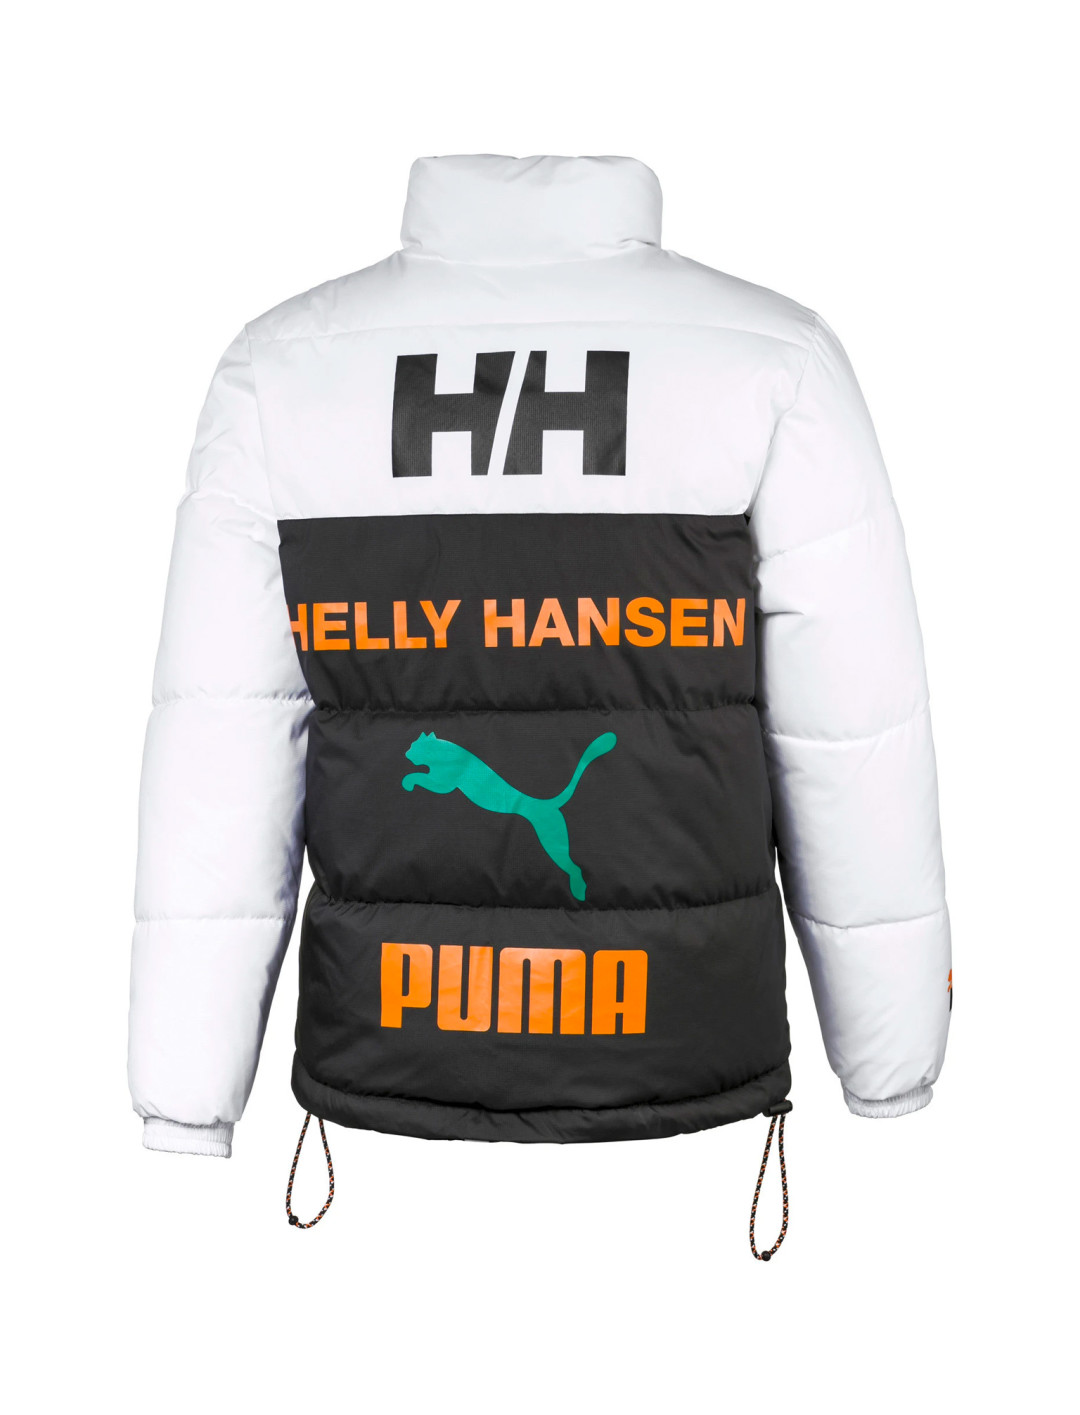 Fake Down Jacket, Reversible, Puma x Helly Hansen | Post Kulture